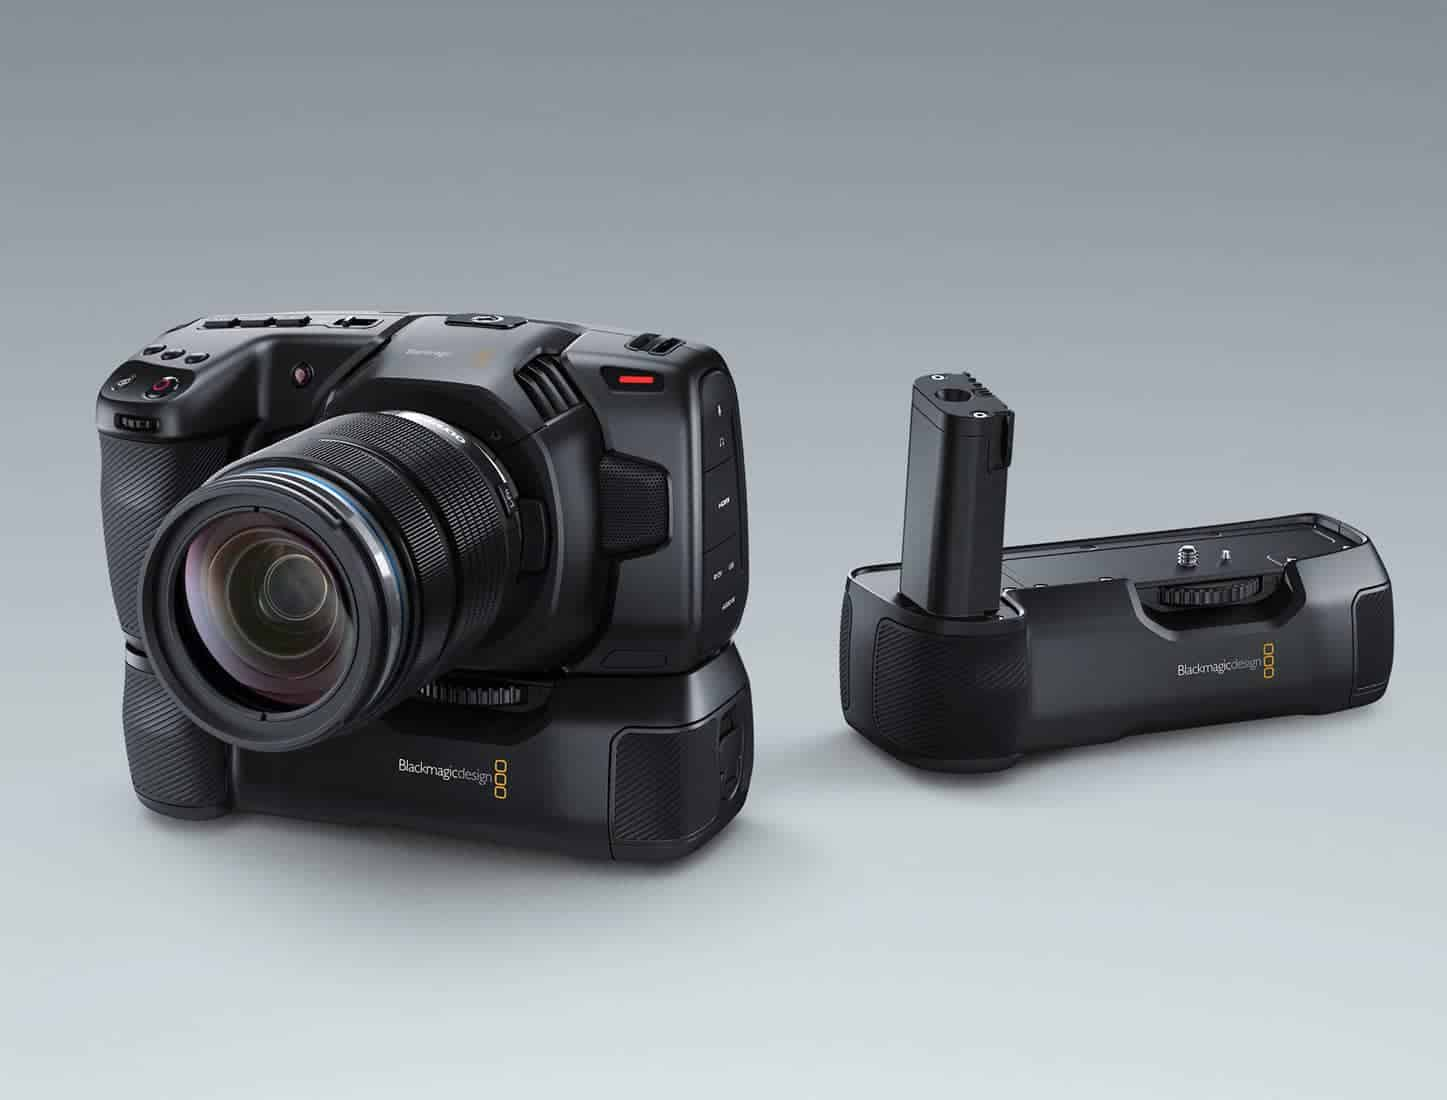 Blackmagic Pocket Cinema Camera 4K gets energy boost, could lure GH5